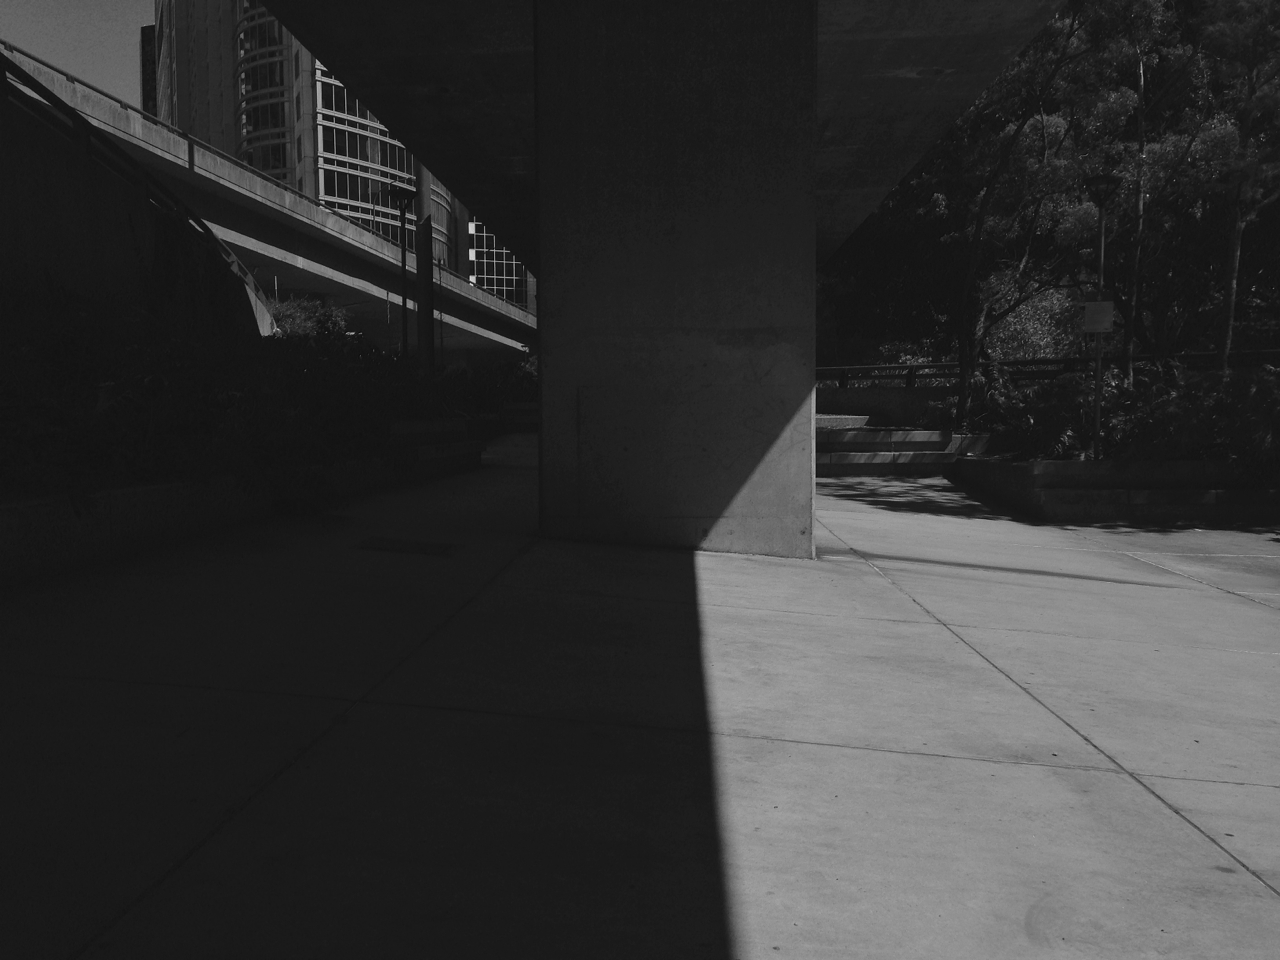 #streetphotography, #sydney, #documentingspace, #mobilephotography